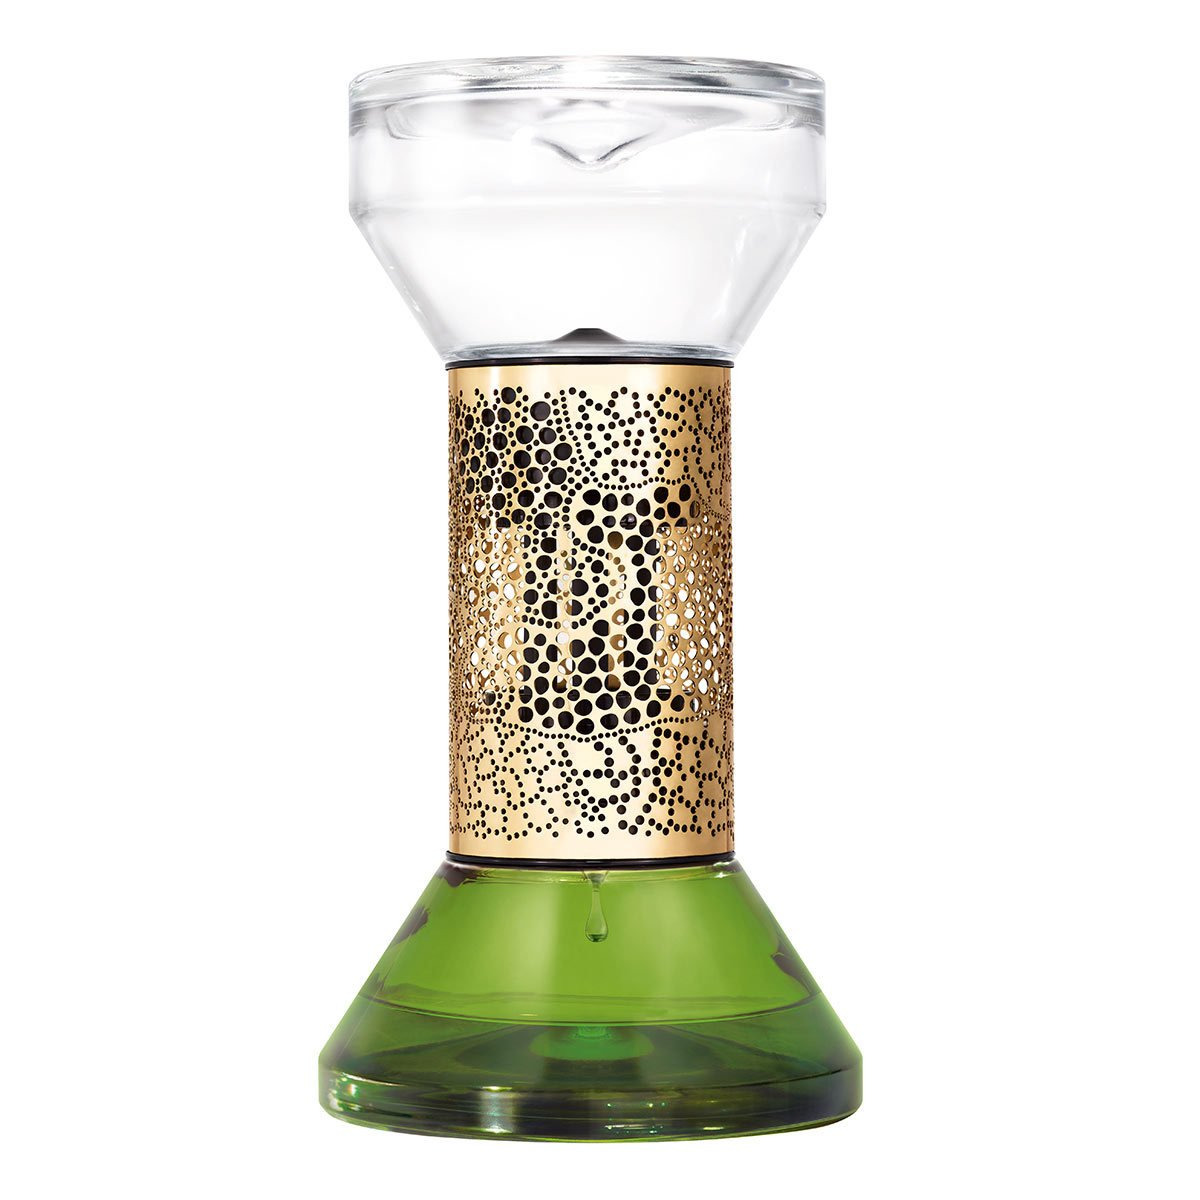 Diptyque Figuier (Fig) Hourglass Diffuser 2.0 NEW Design